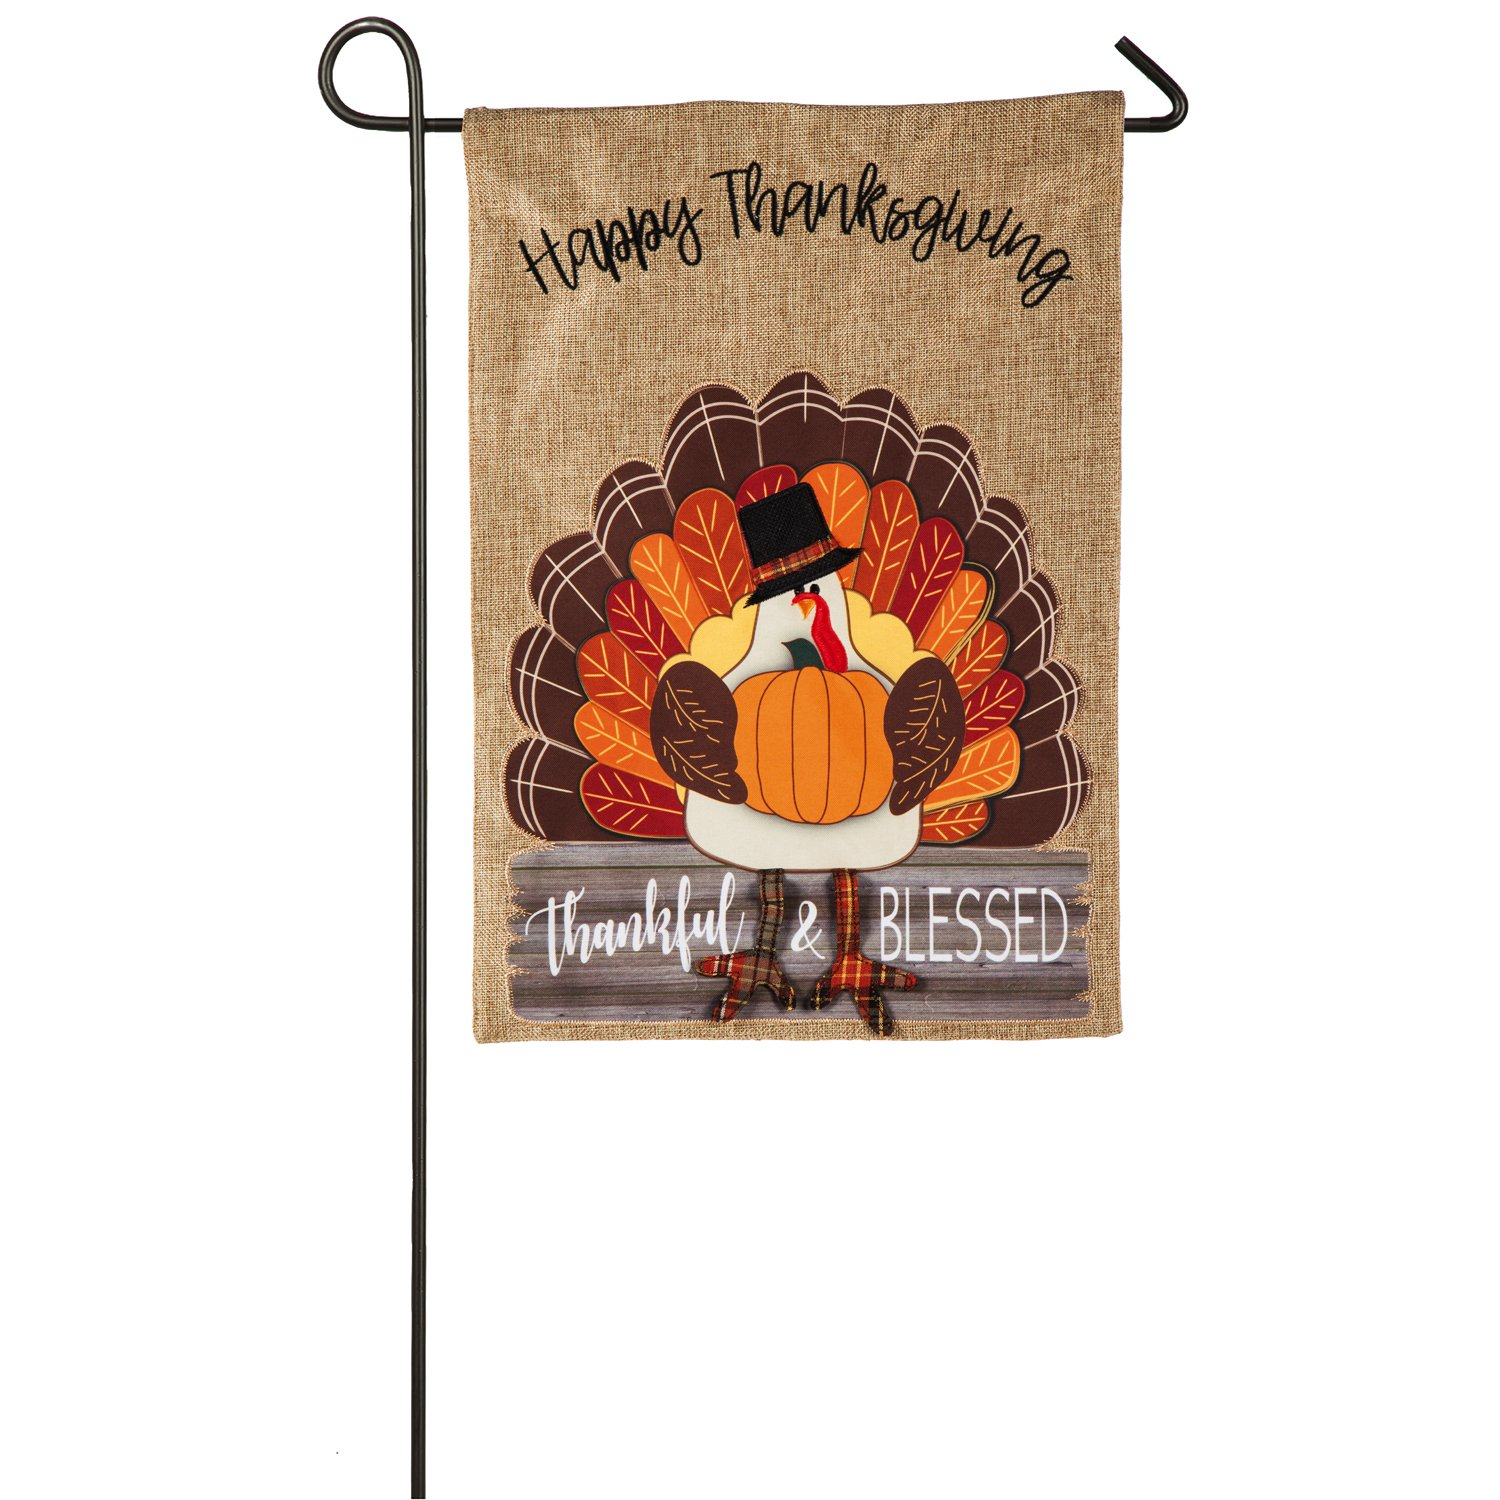 Evergreen Thankful and Blessed Turkey Outdoor Safe Double-Sided Burlap Garden Flag, 12.5 x 18 inches